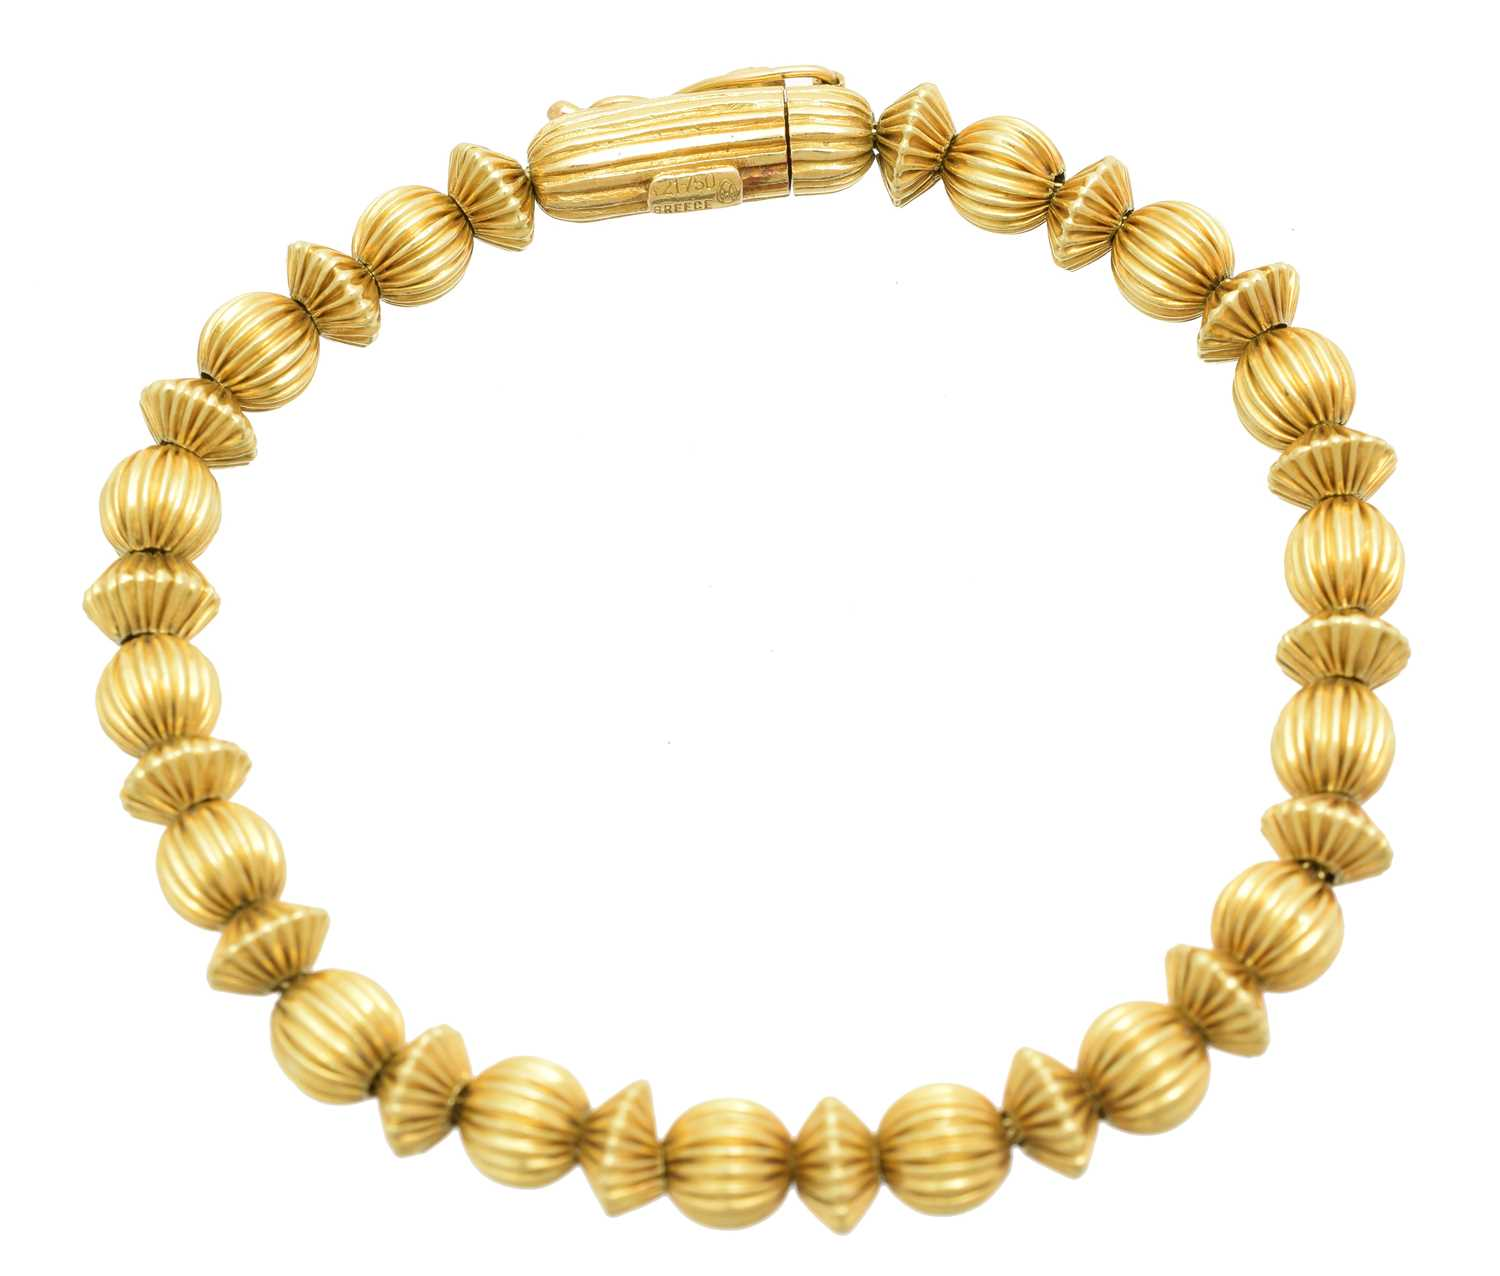 A bracelet by Ilias Lalaounis, designed as a series of grooved beads with a cylindrical push piece clasp, maker's marks for Ilias Lalaounis, stamped A21-750, length 19cm, gross weight 16.4g.